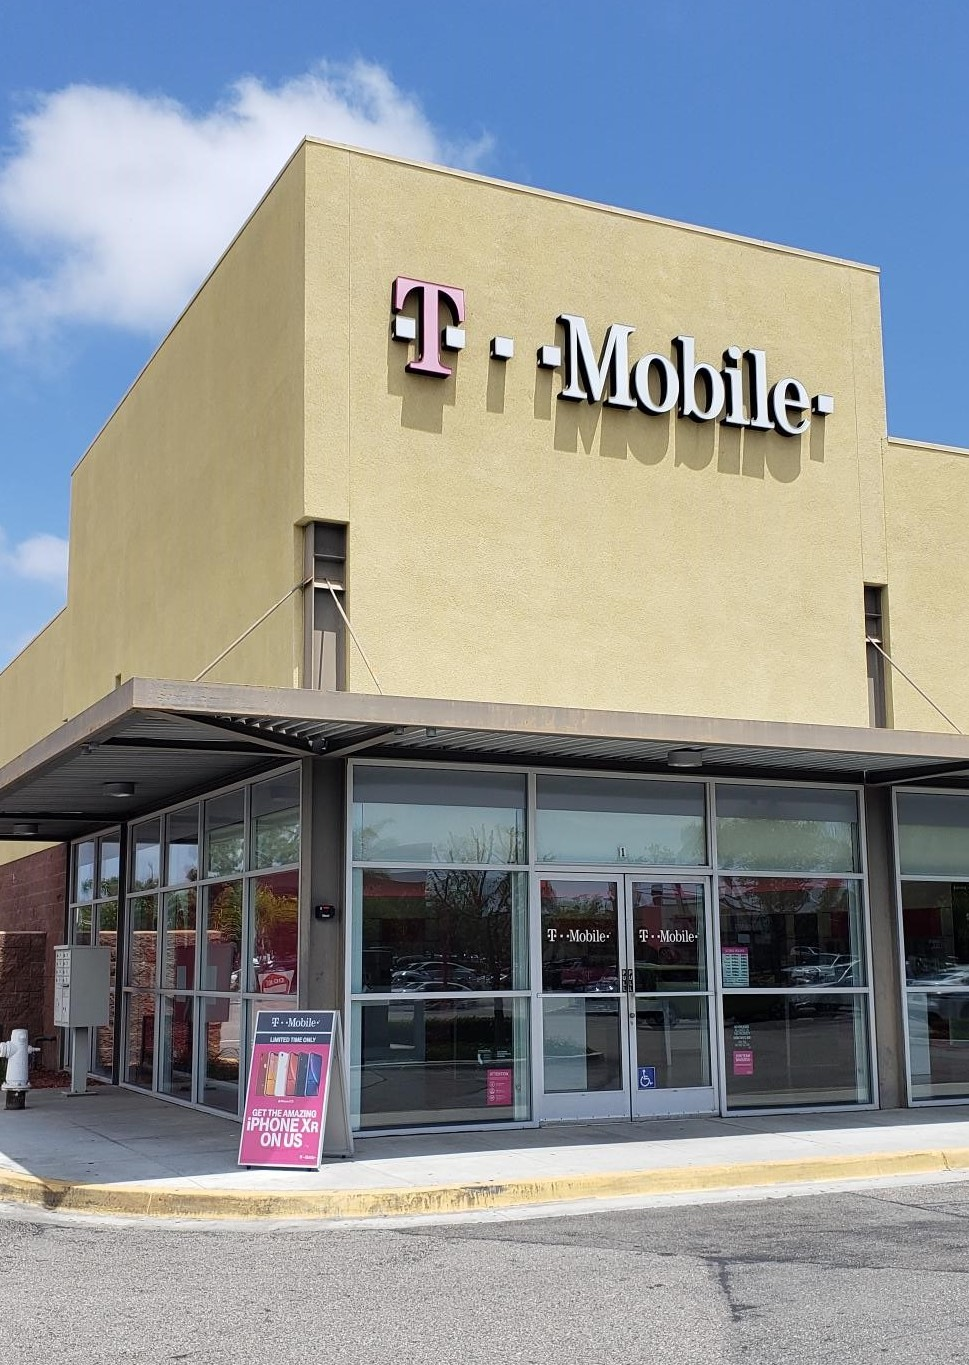 t mobile store at 17037 brookhurst st ste 1 fountain valley ca t mobile t mobile store at 17037 brookhurst st